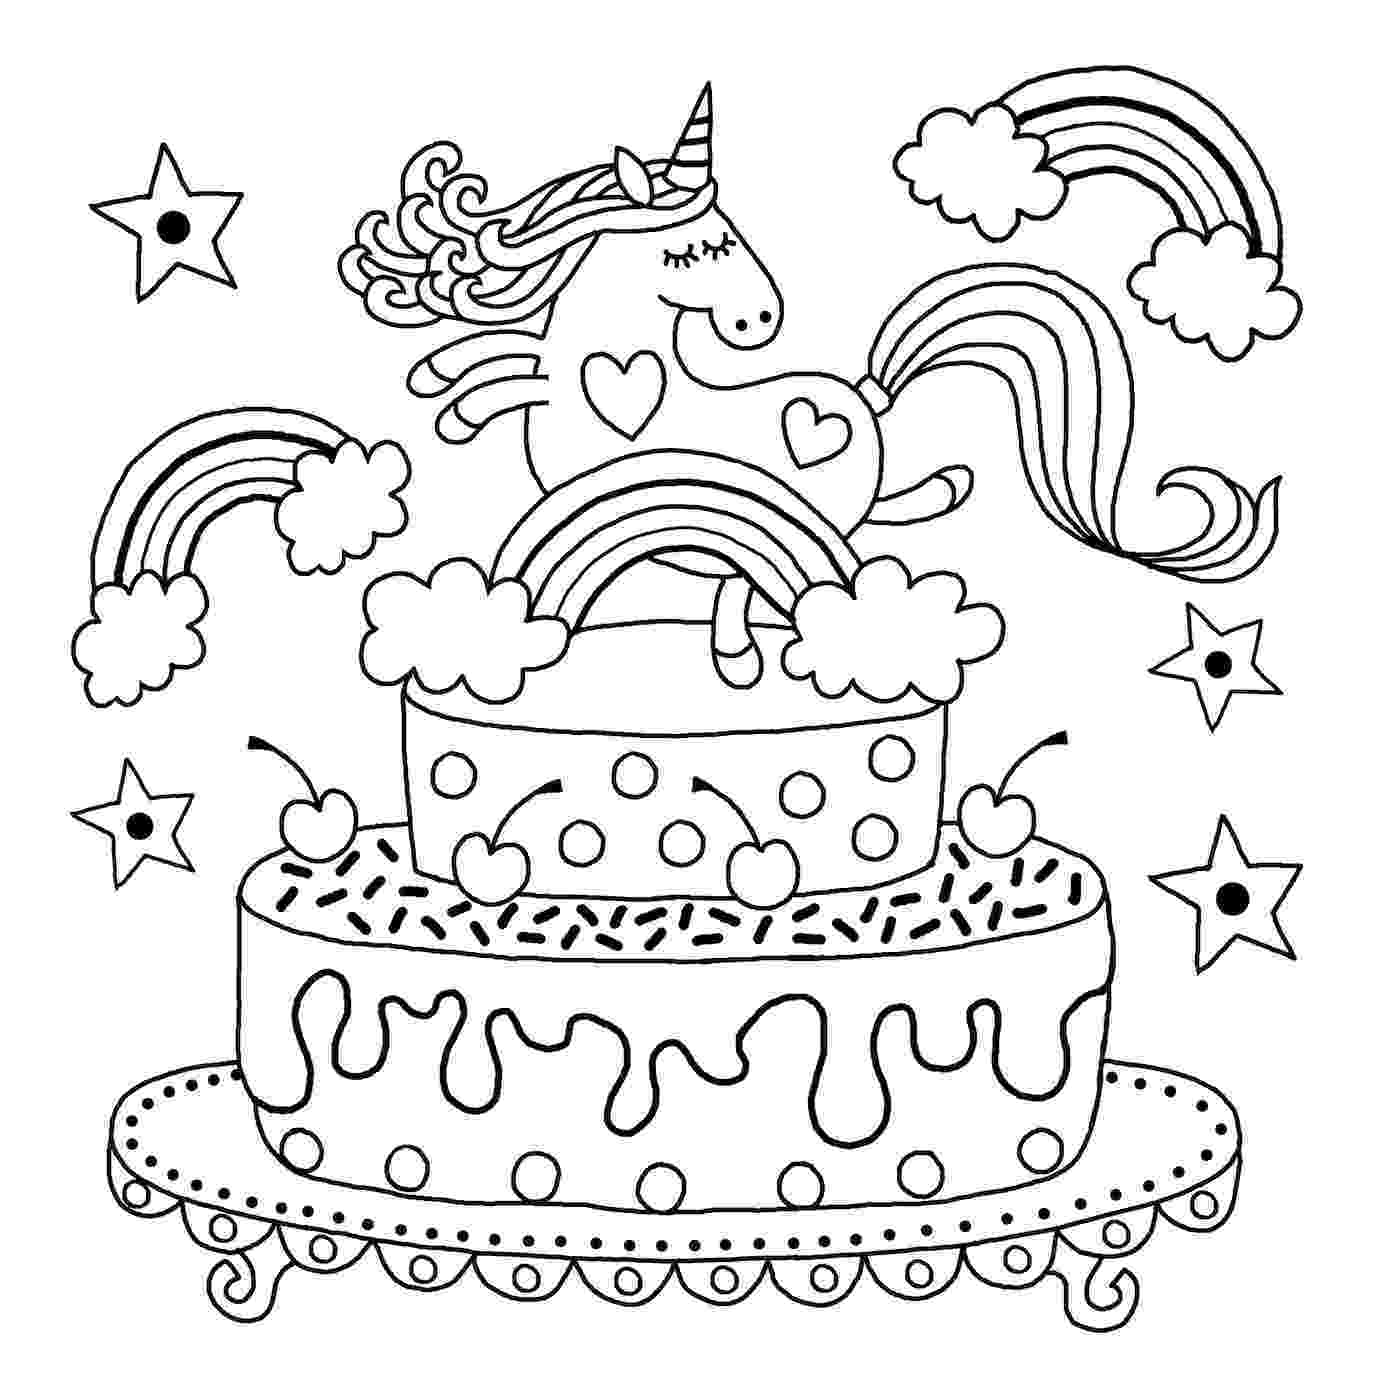 coloring pages for unicorns unicorn coloring pages to download and print for free pages unicorns for coloring